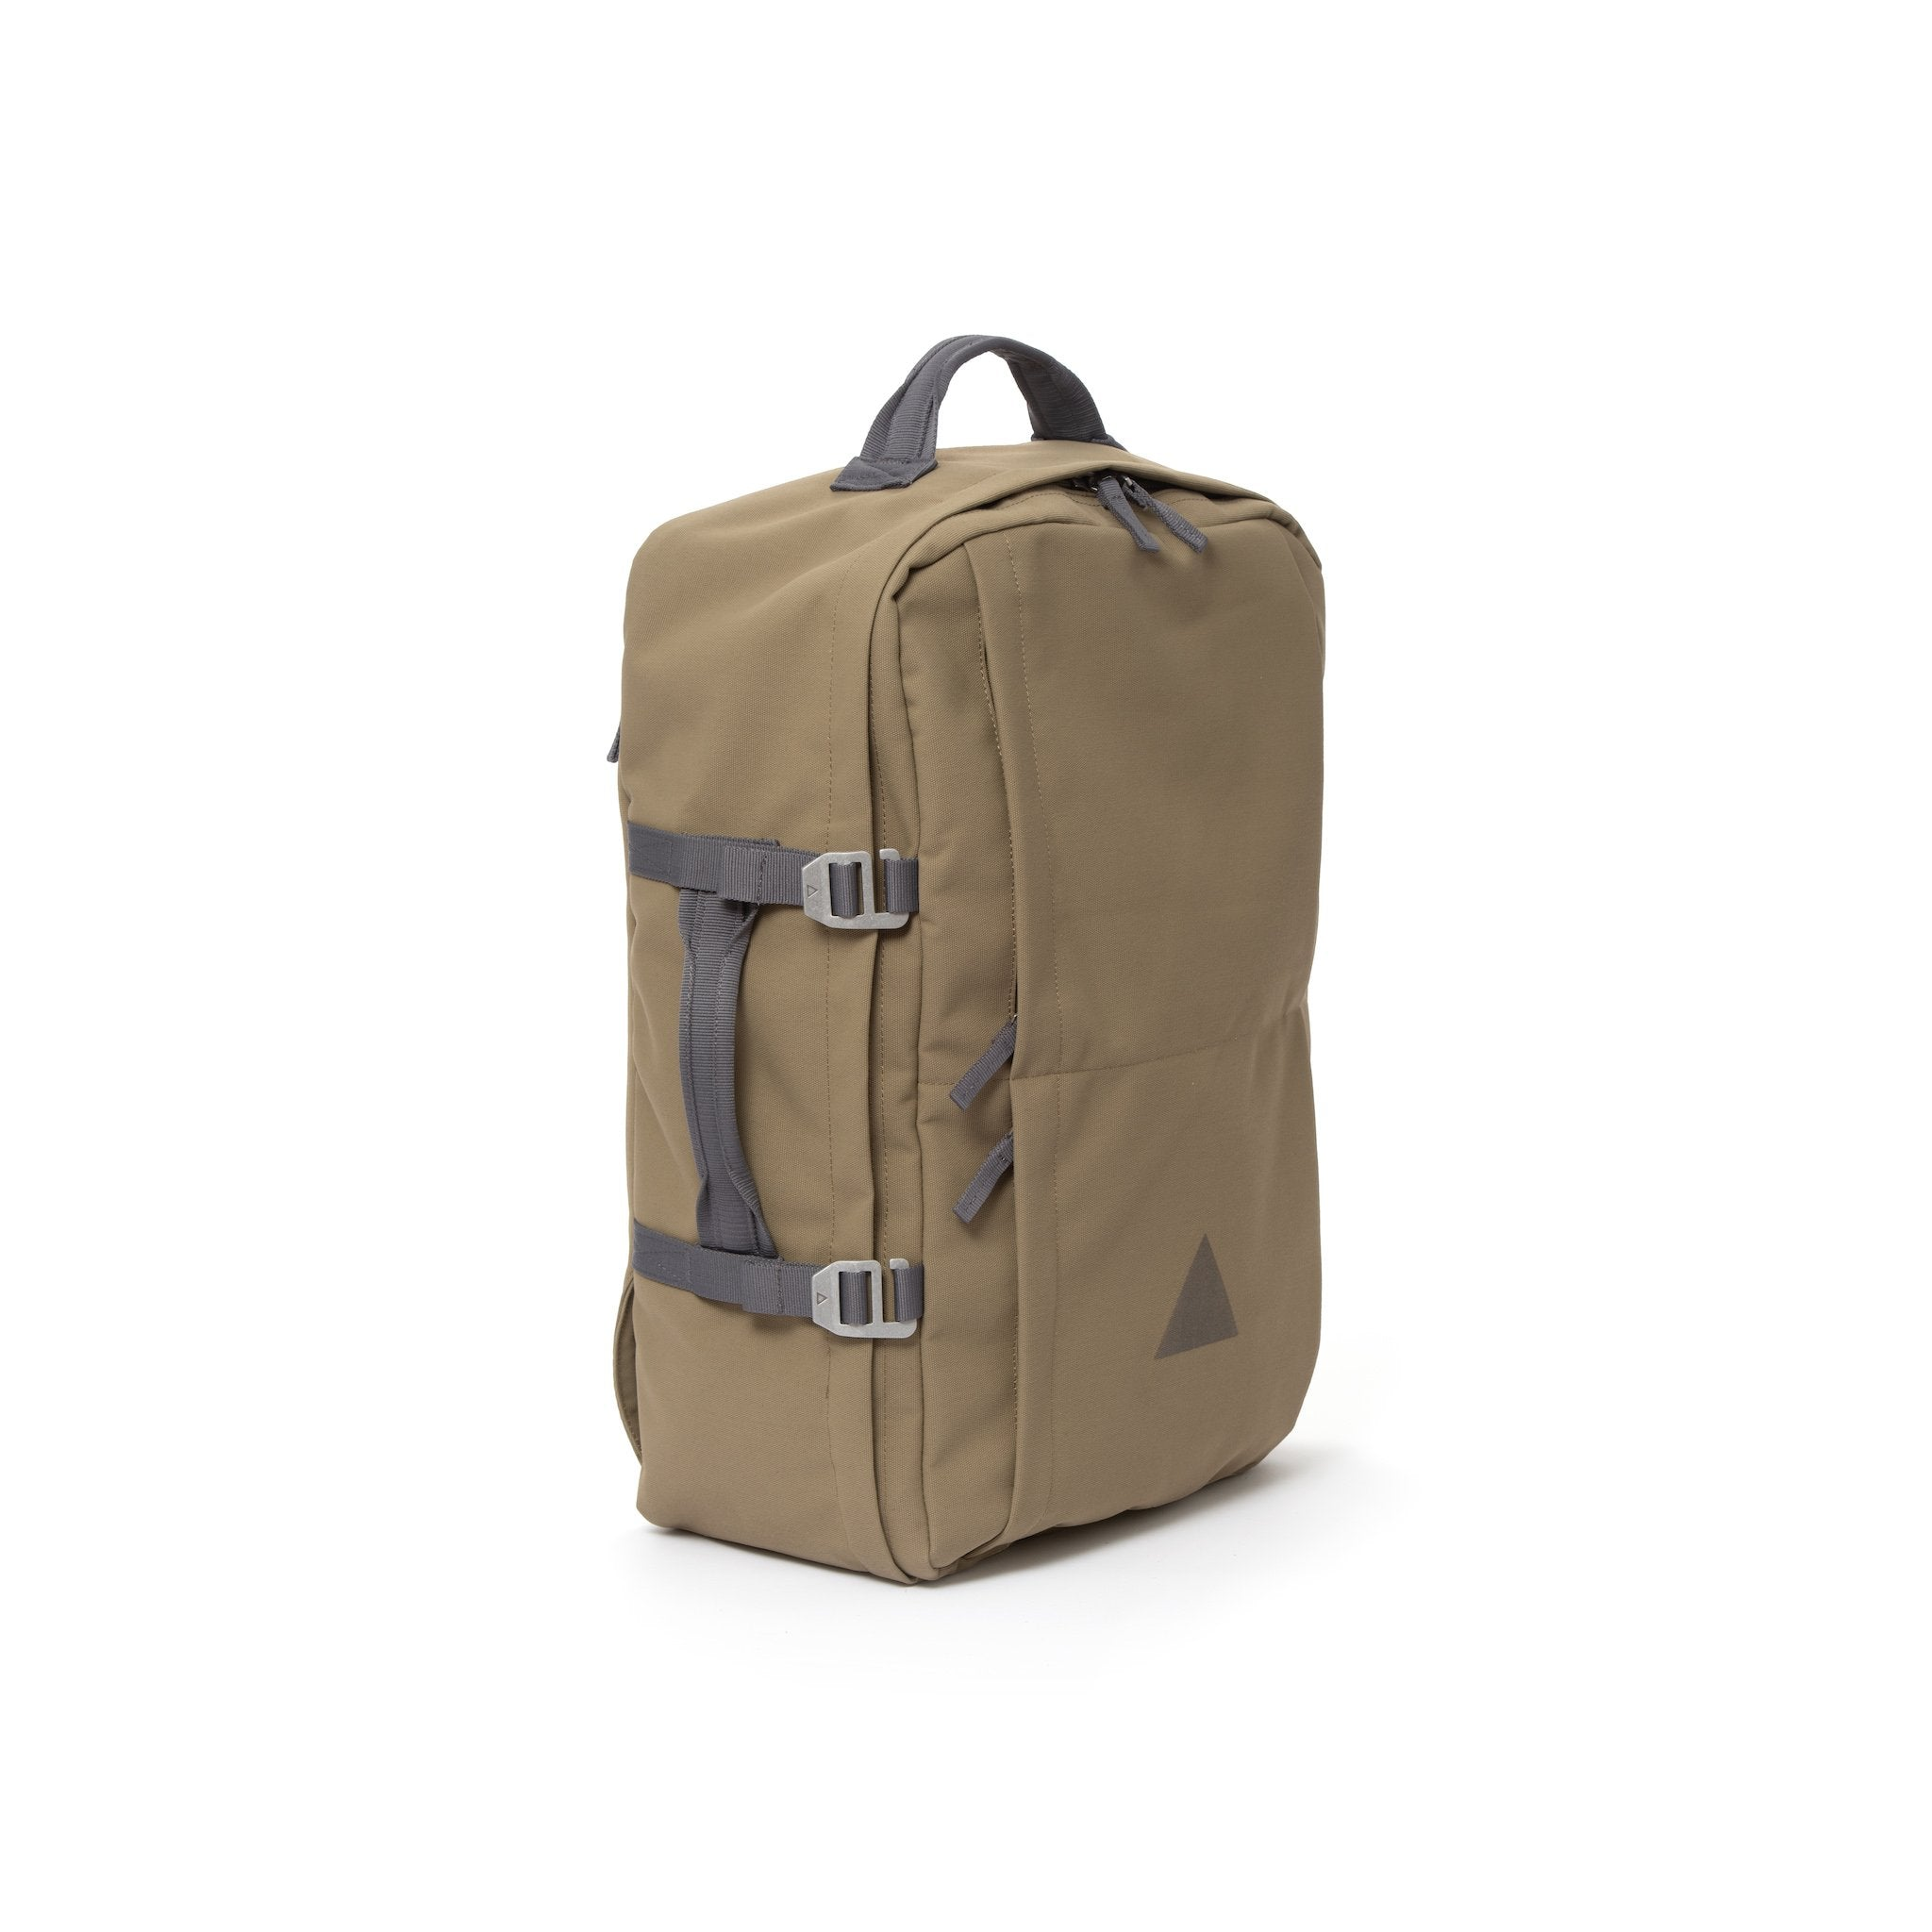 Khaki recycled canvas travel backpack with carry handle.